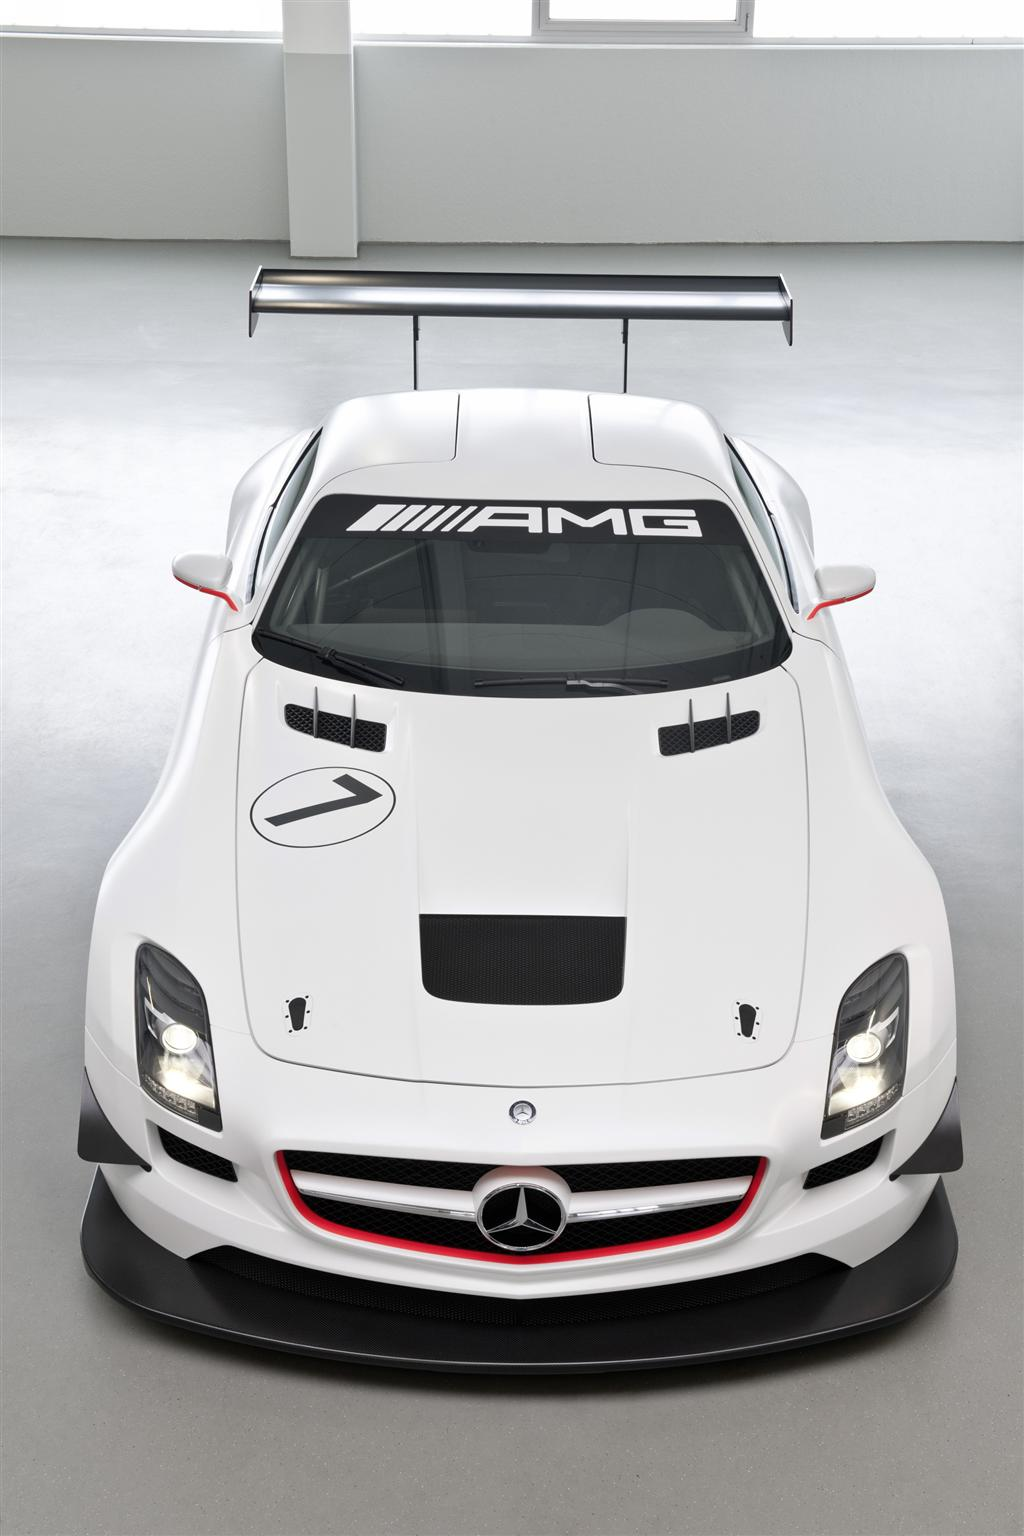 2010 mercedes benz sls amg gt3 image photo 18 of 19. Black Bedroom Furniture Sets. Home Design Ideas